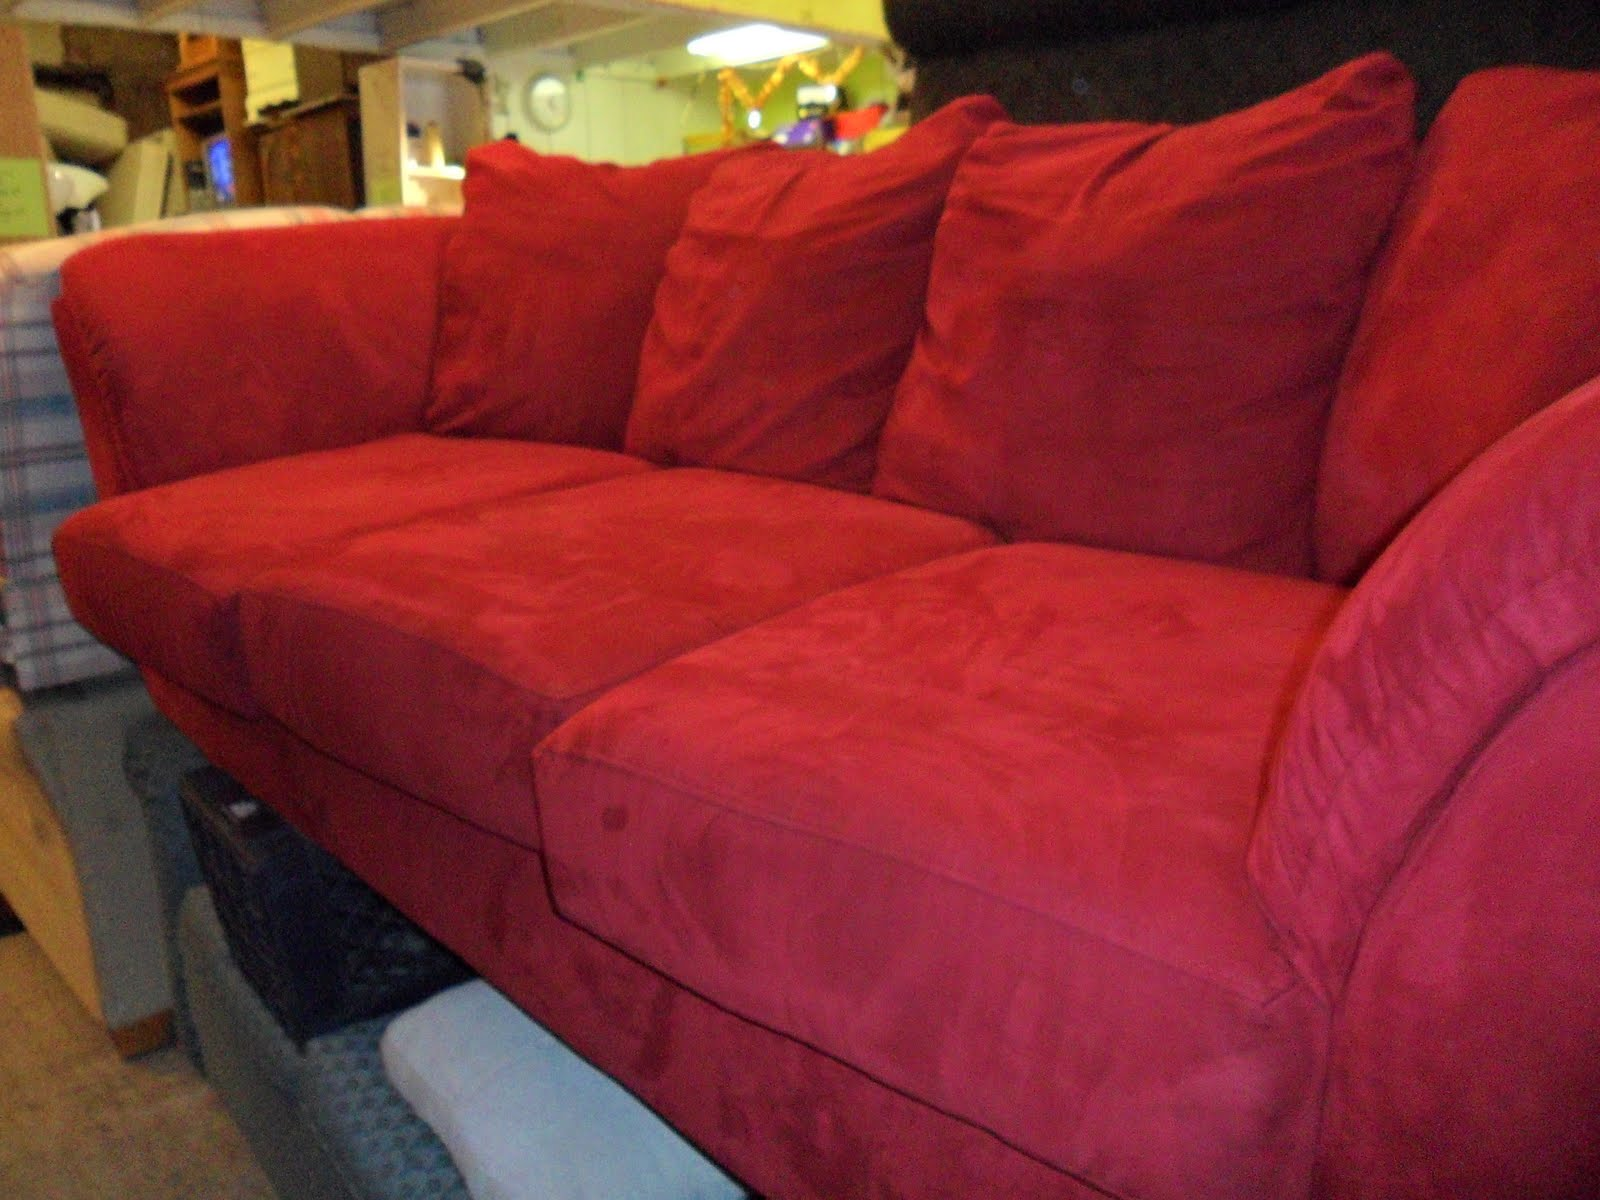 New Red Microfiber sofa Interior Design and Home Inspiration